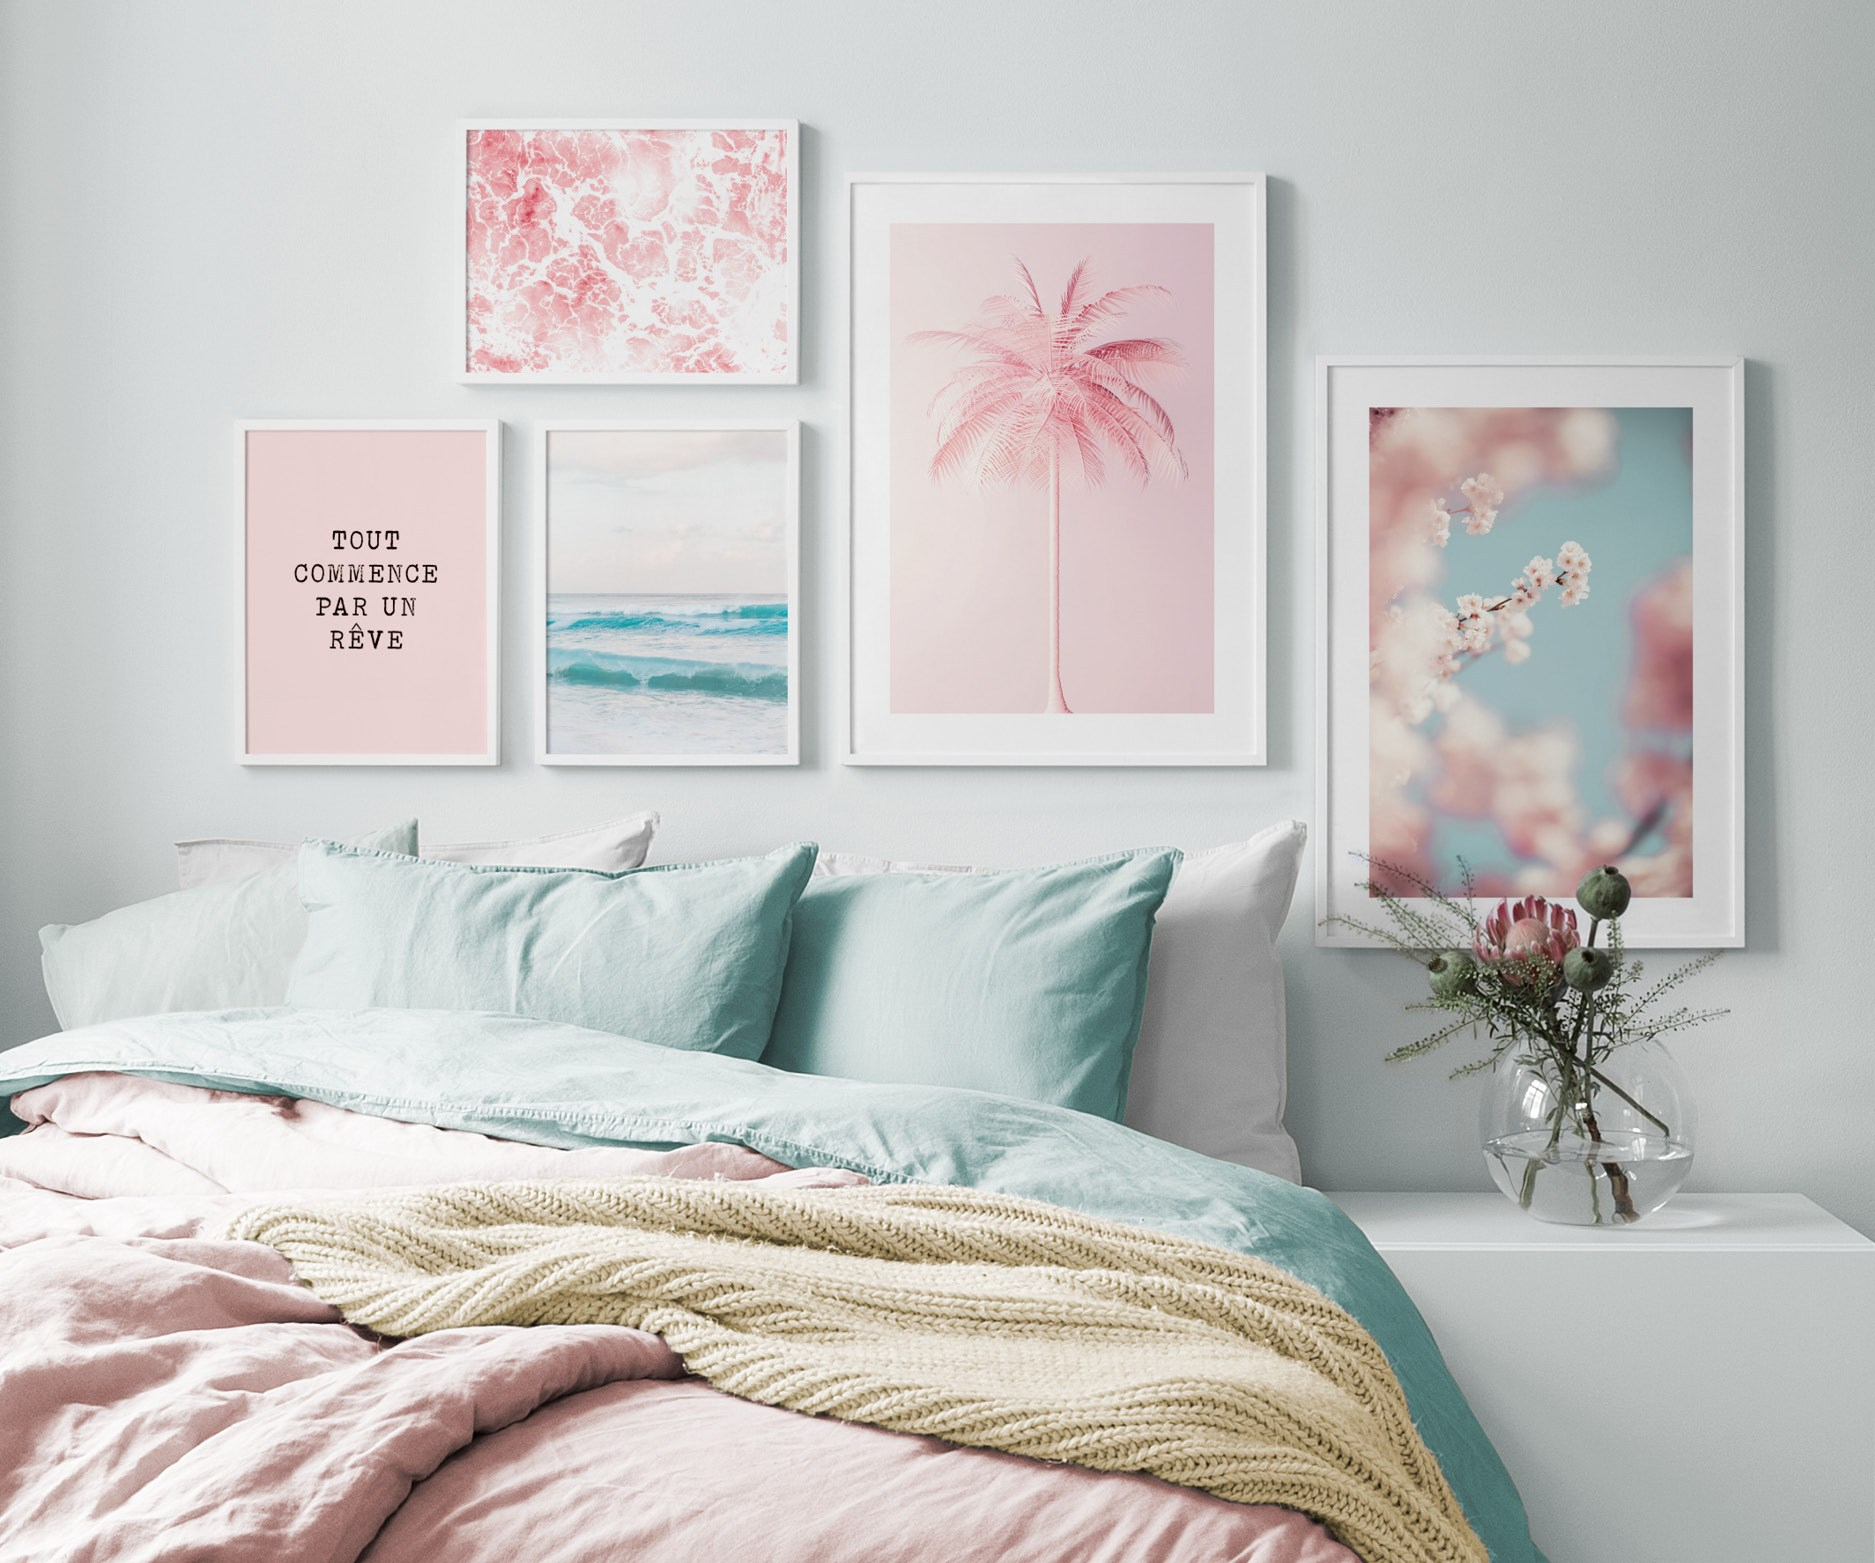 Bedroom Inspiration - Posters And Art Prints In Picture Walls